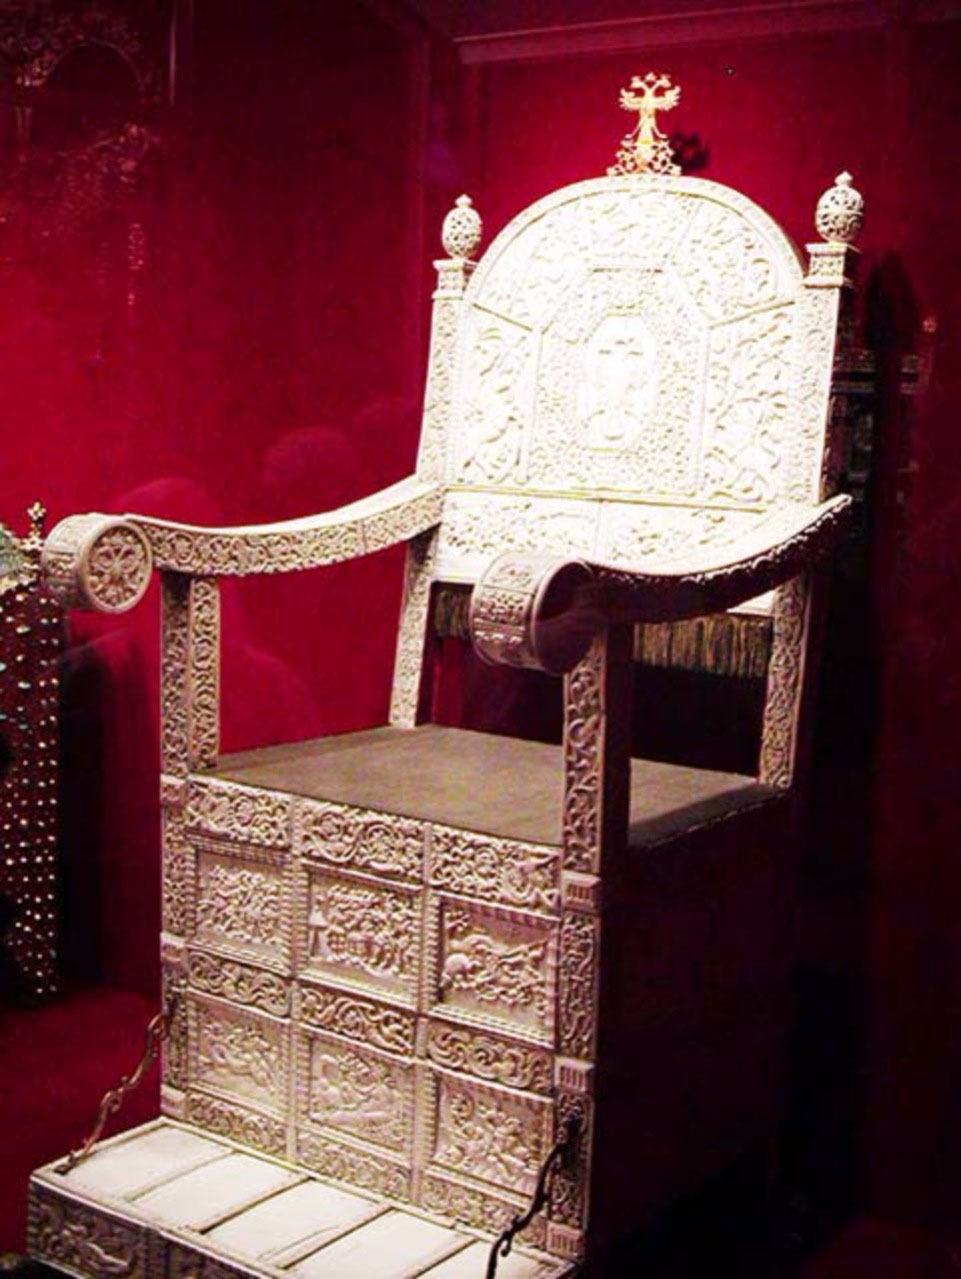 Ivan the Terrible's throne